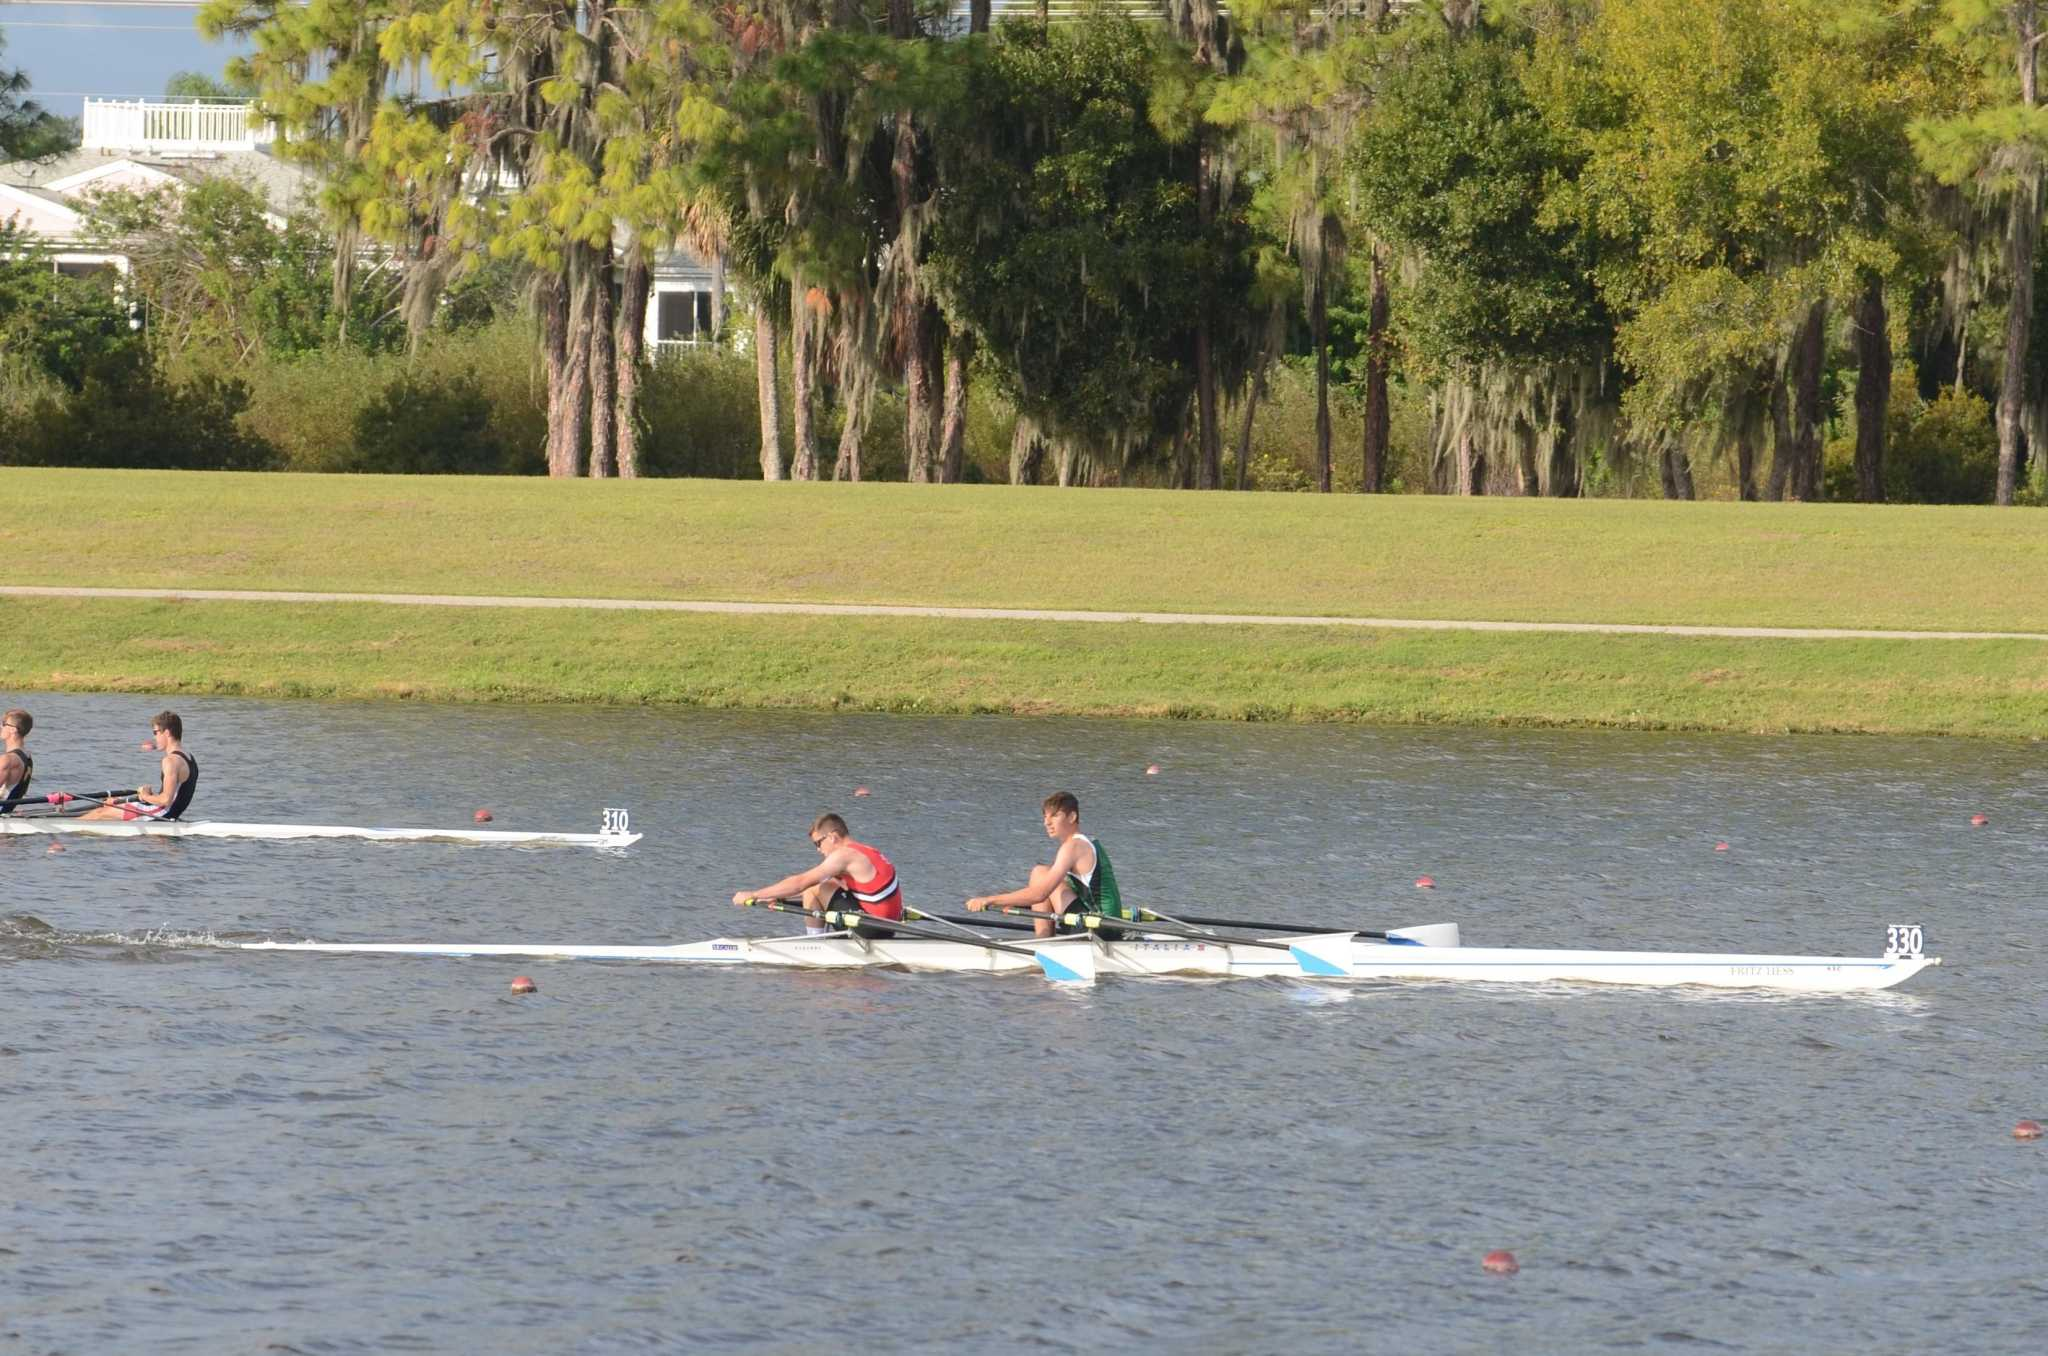 Local rowing trio nab honors at regional event